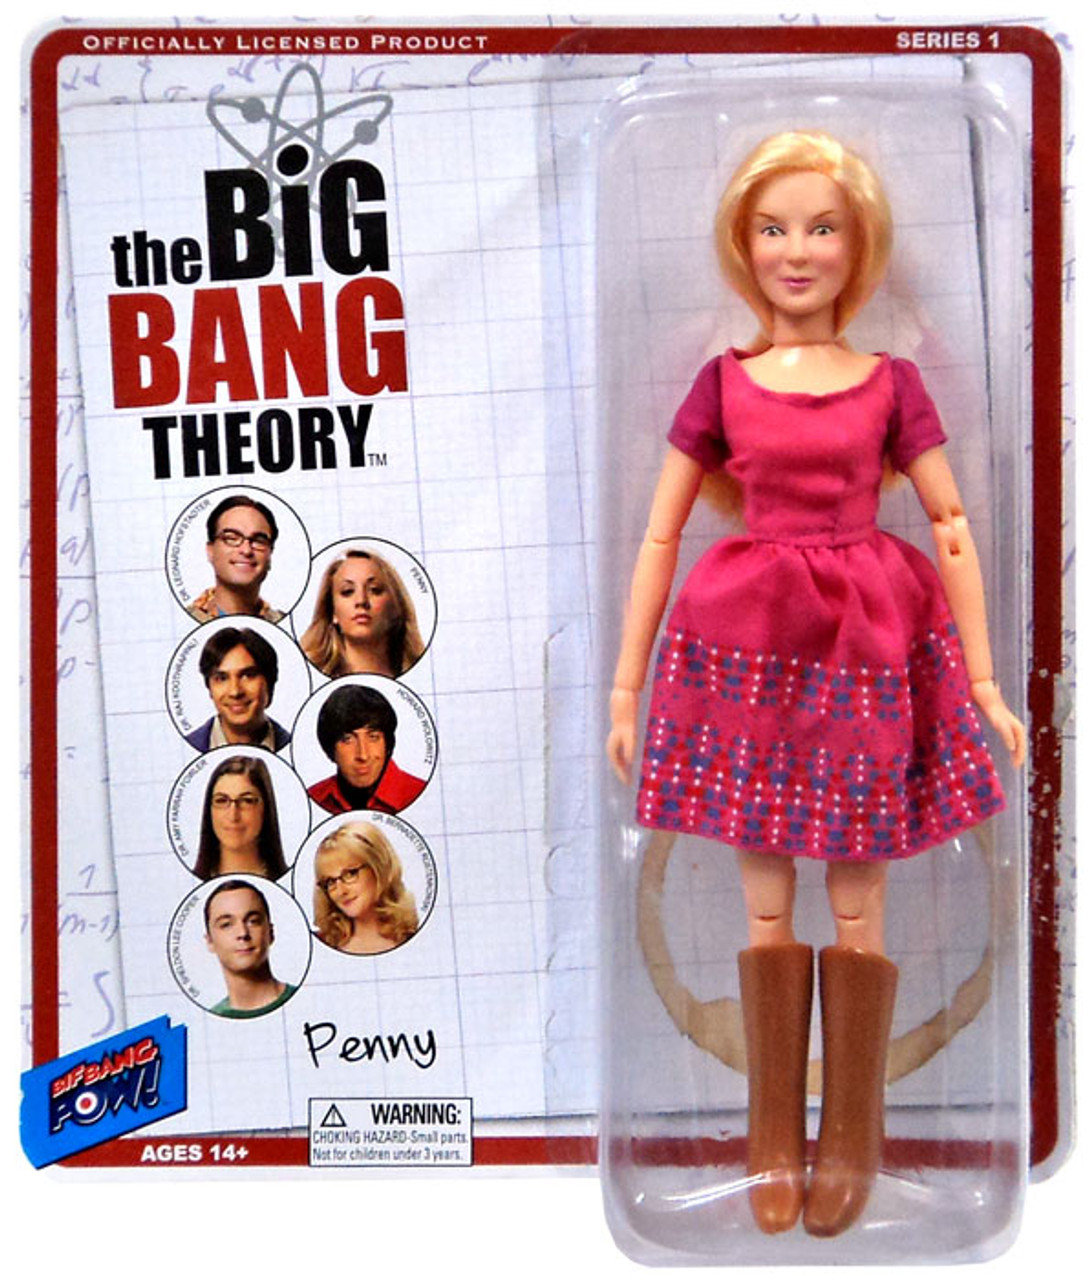 The Big Bang Theory Retro Style Penny Action Figure